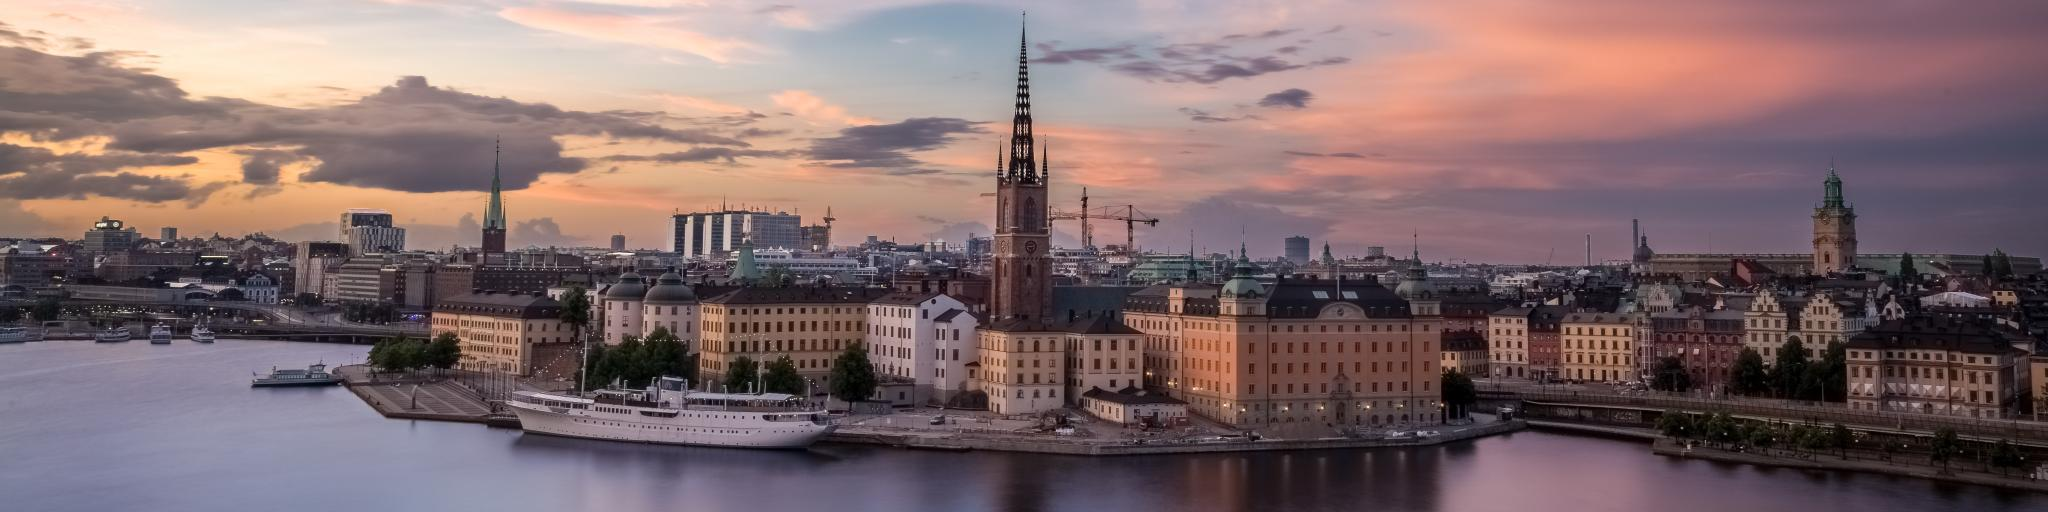 A purple sky at sunset over the city of Stockholm in Sweden